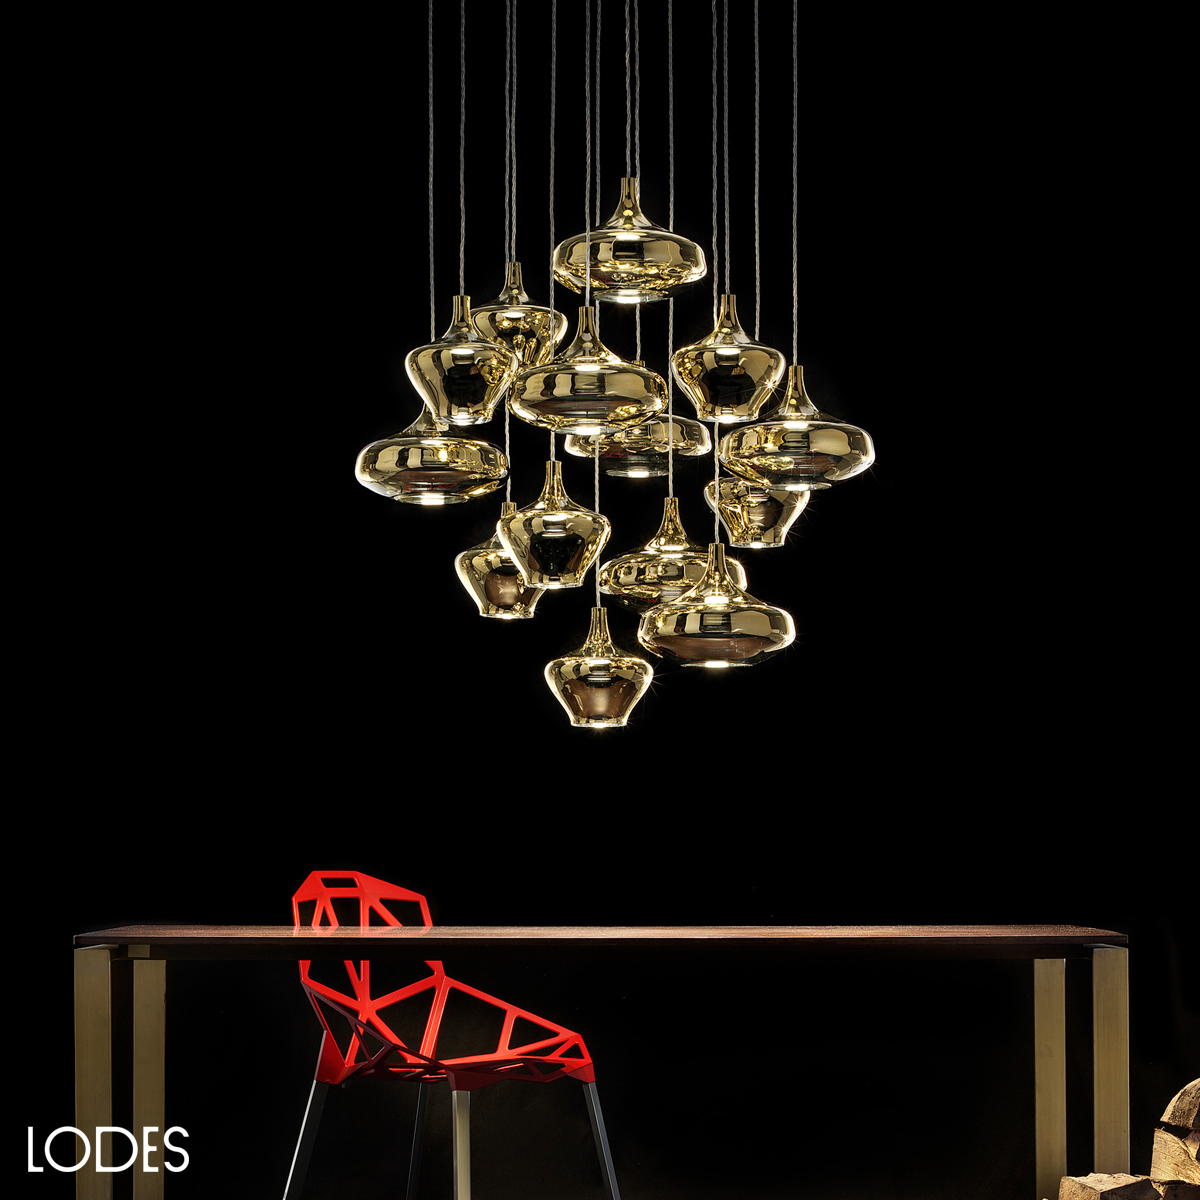 luxury italian designer nostalgia suspension lamp designer luxury lighting at cassoni. Black Bedroom Furniture Sets. Home Design Ideas